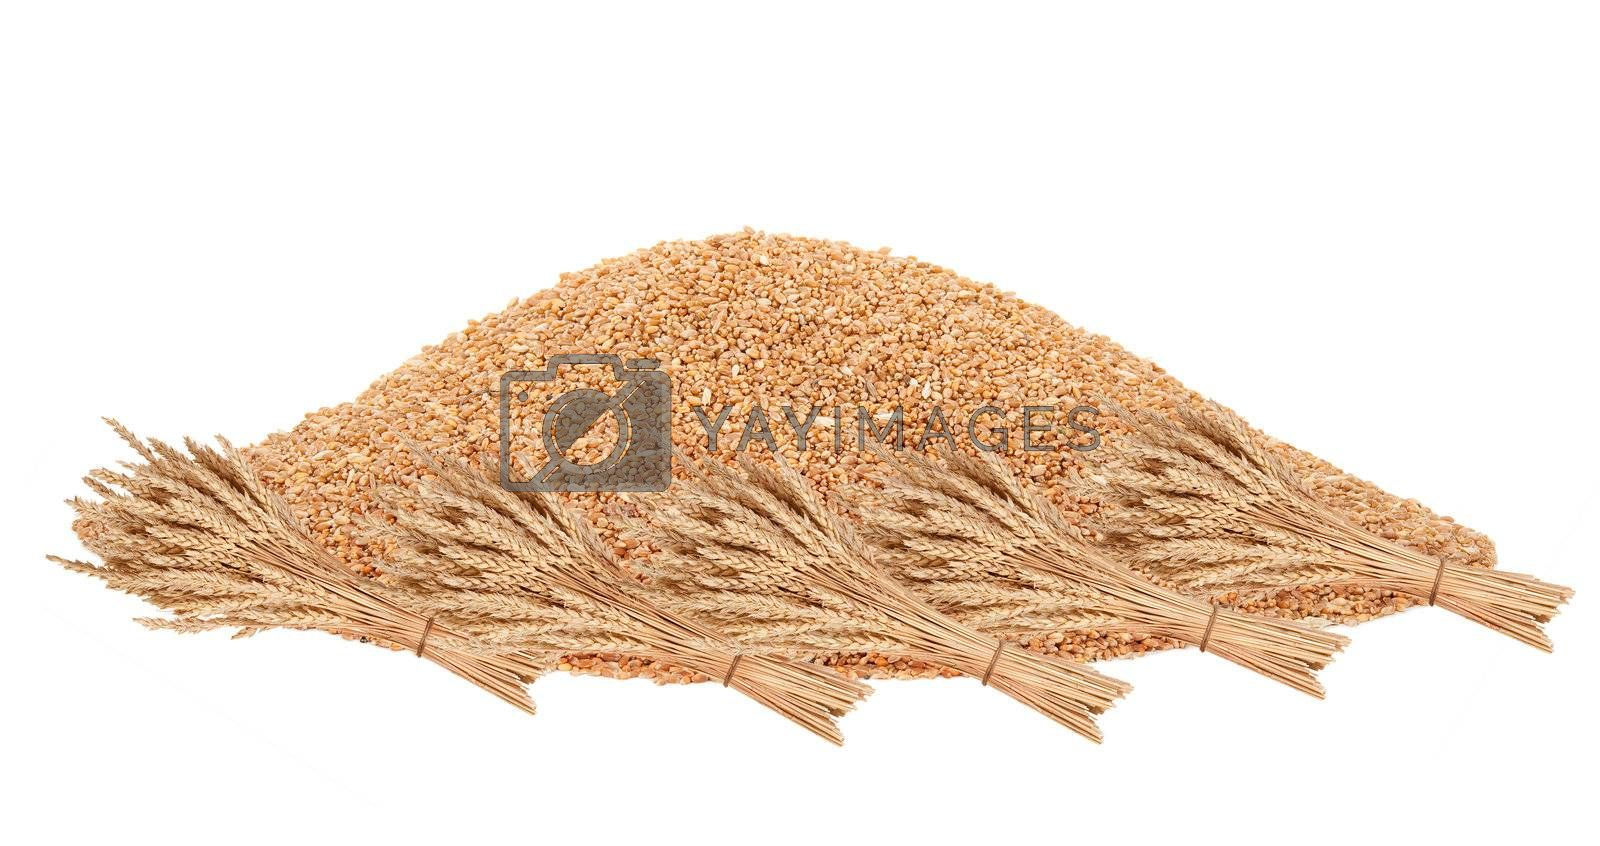 Big pile of grain with a sheaf of wheat